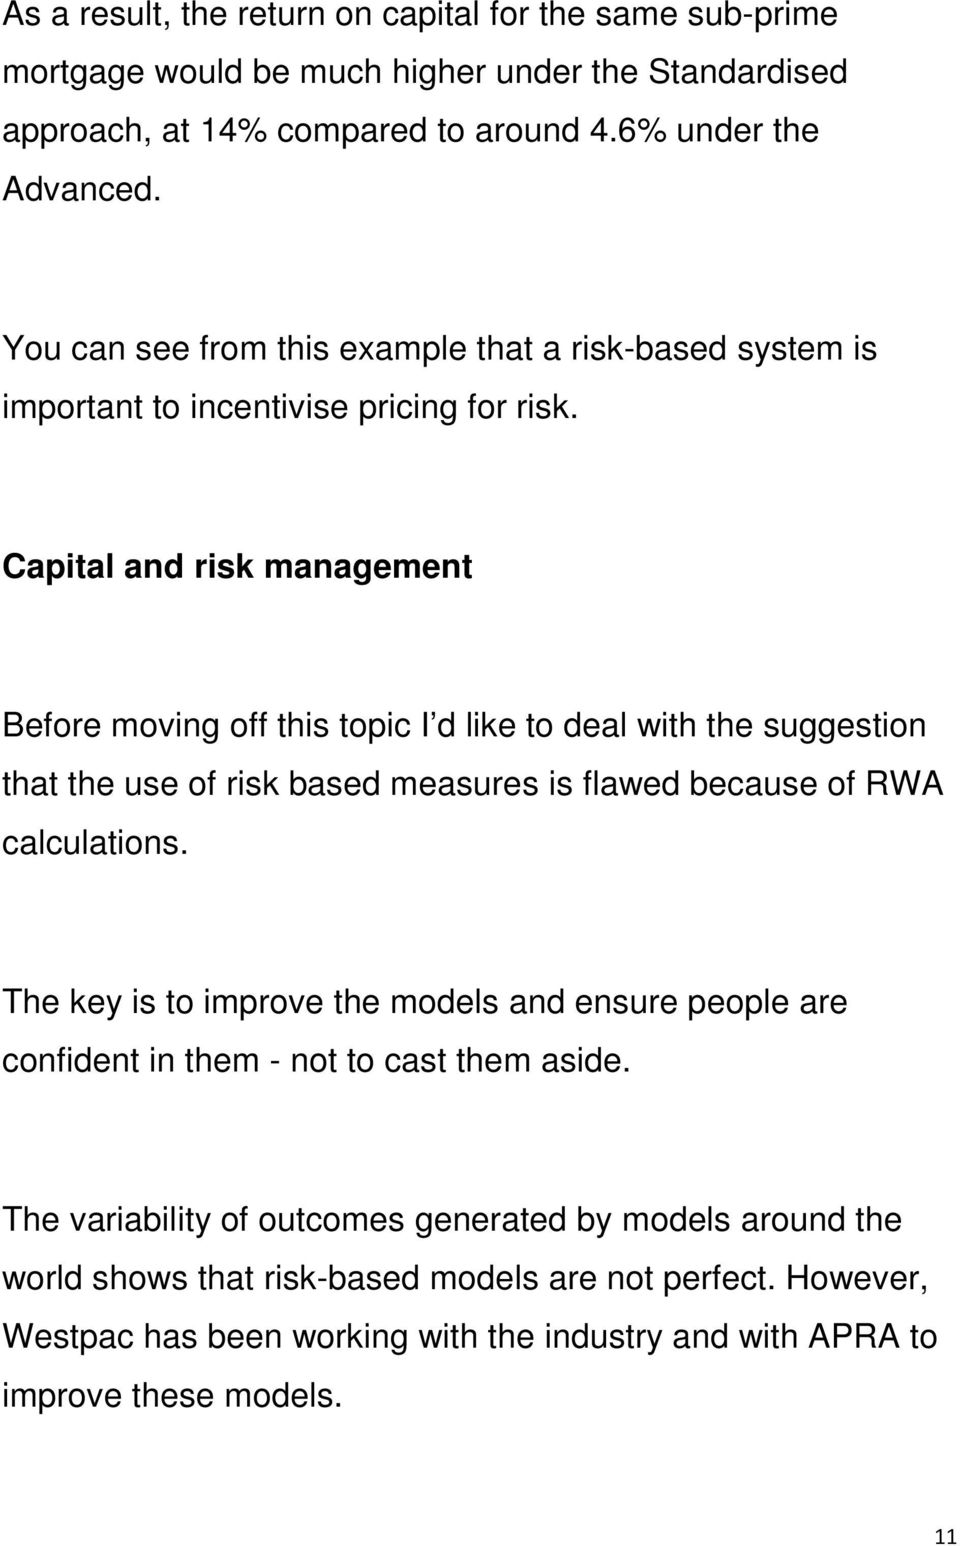 Capital and risk management Before moving off this topic I d like to deal with the suggestion that the use of risk based measures is flawed because of RWA calculations.